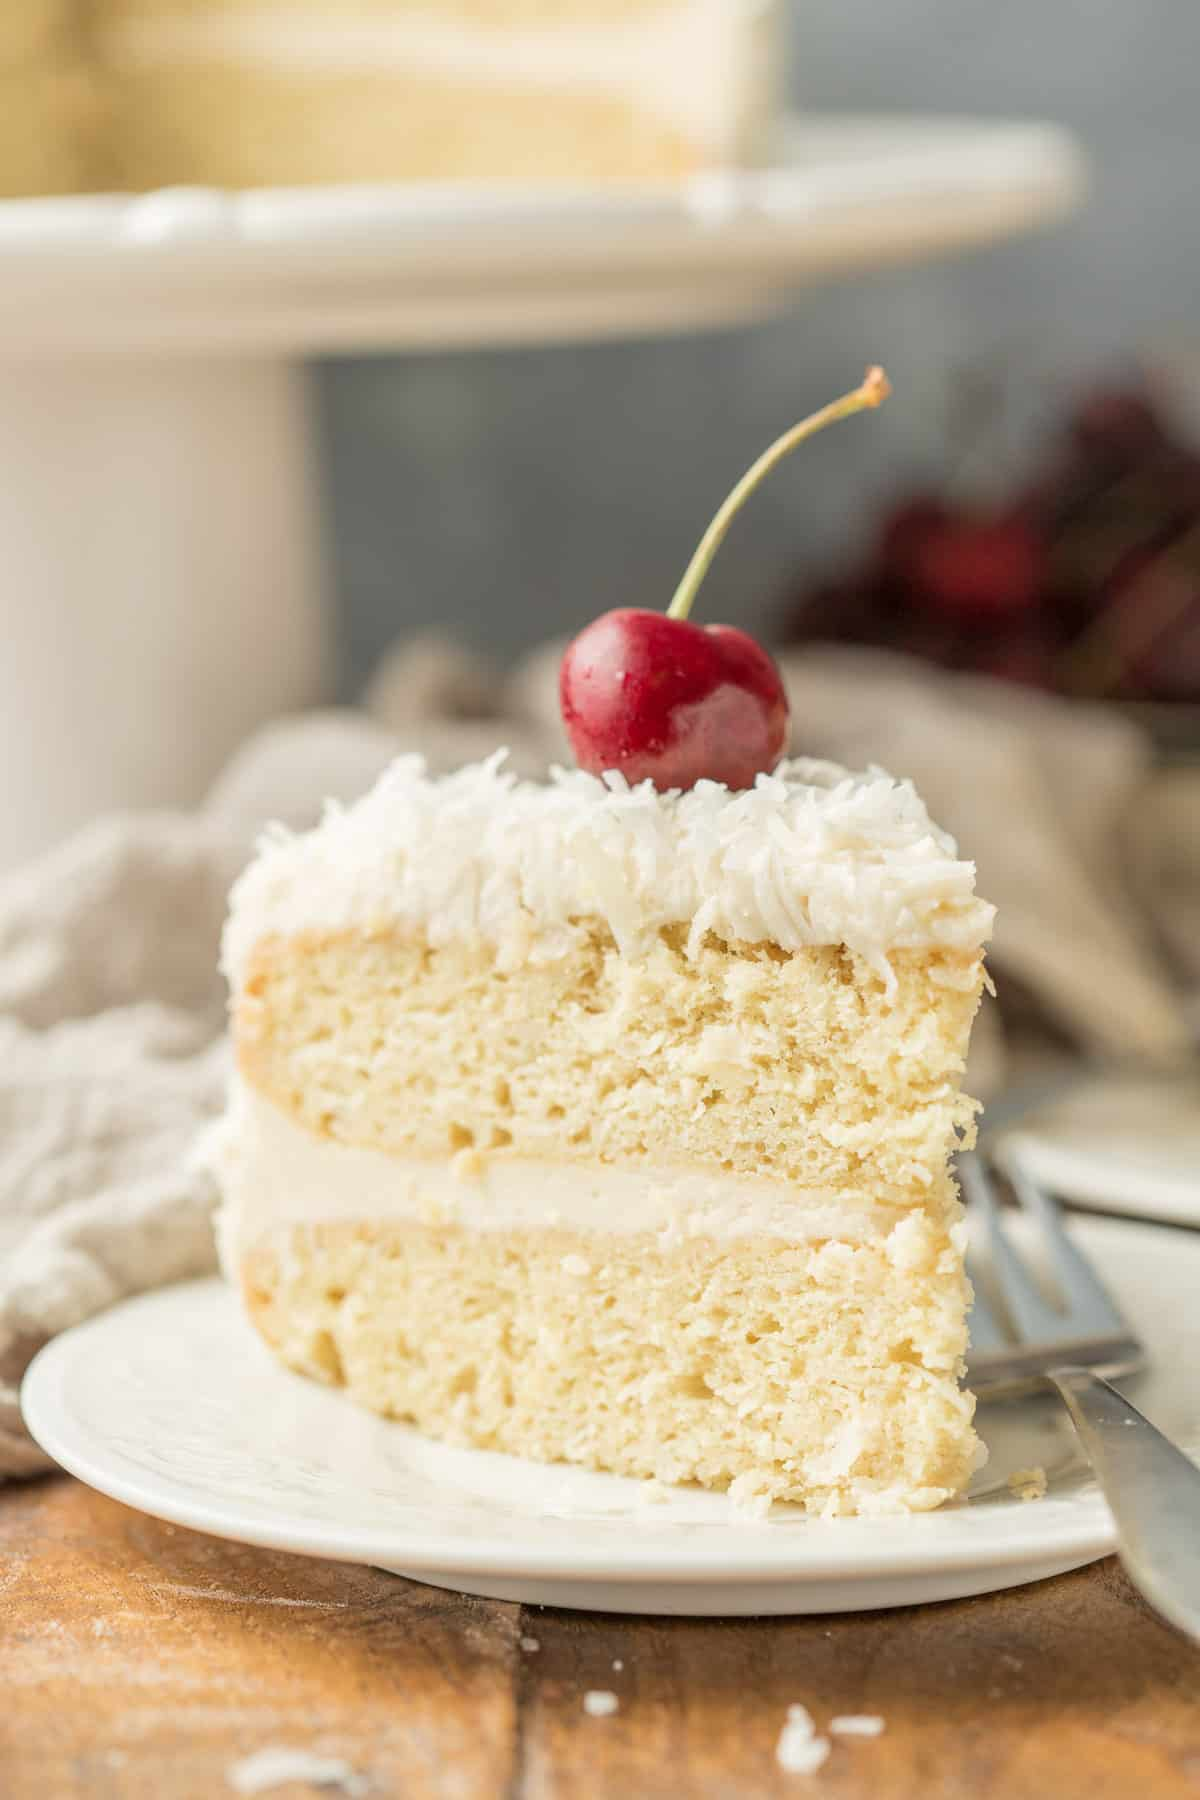 Slice of Vegan Coconut Cake on a Plate with a Cherry on Top